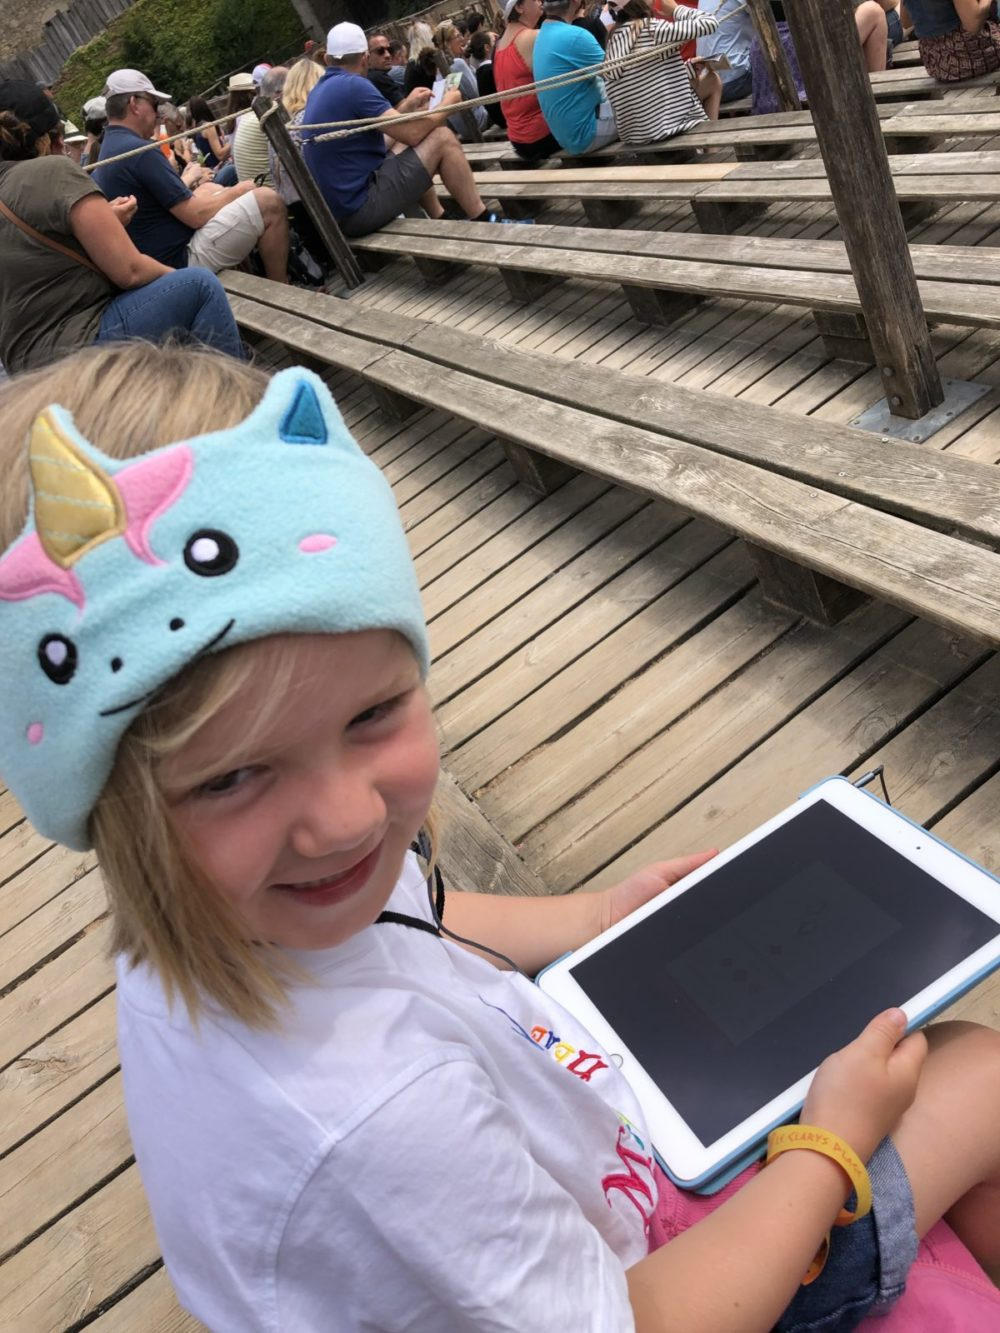 Tips for visiting Puy du Fou with kids - download the Puy du Fou app